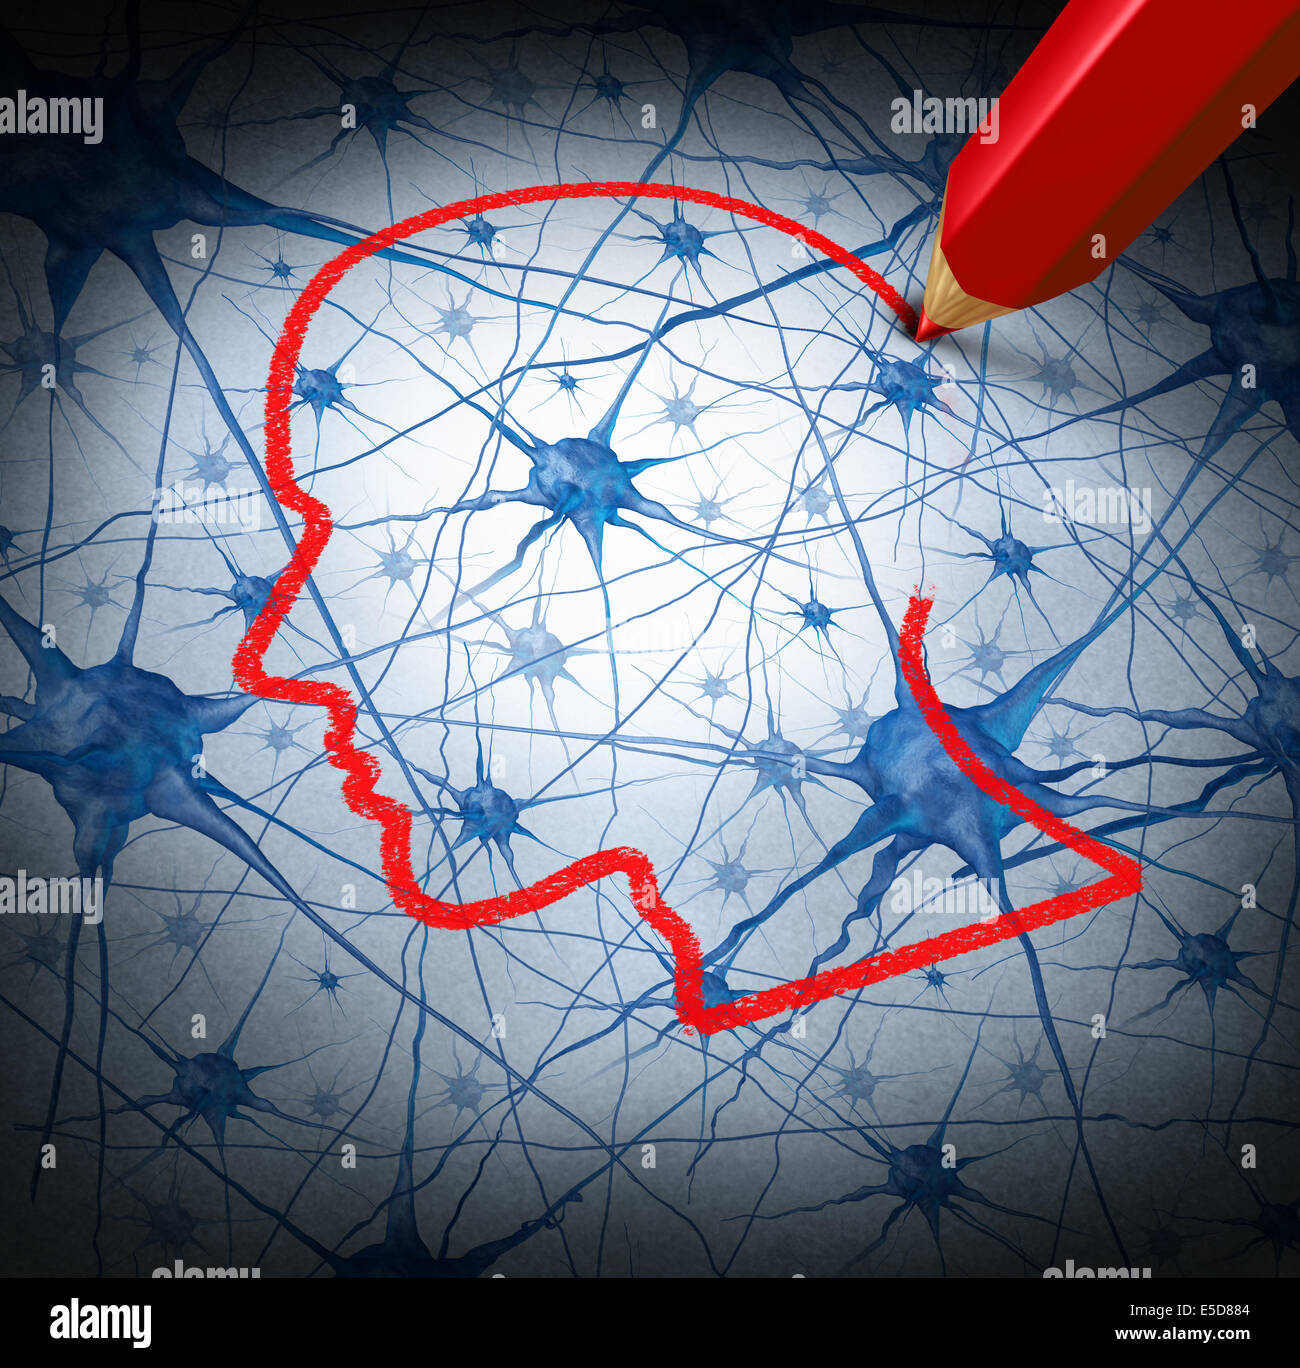 Neurology research concept examining the neurons of a human head to heal memory loss or cells due to dementia and - Stock Image